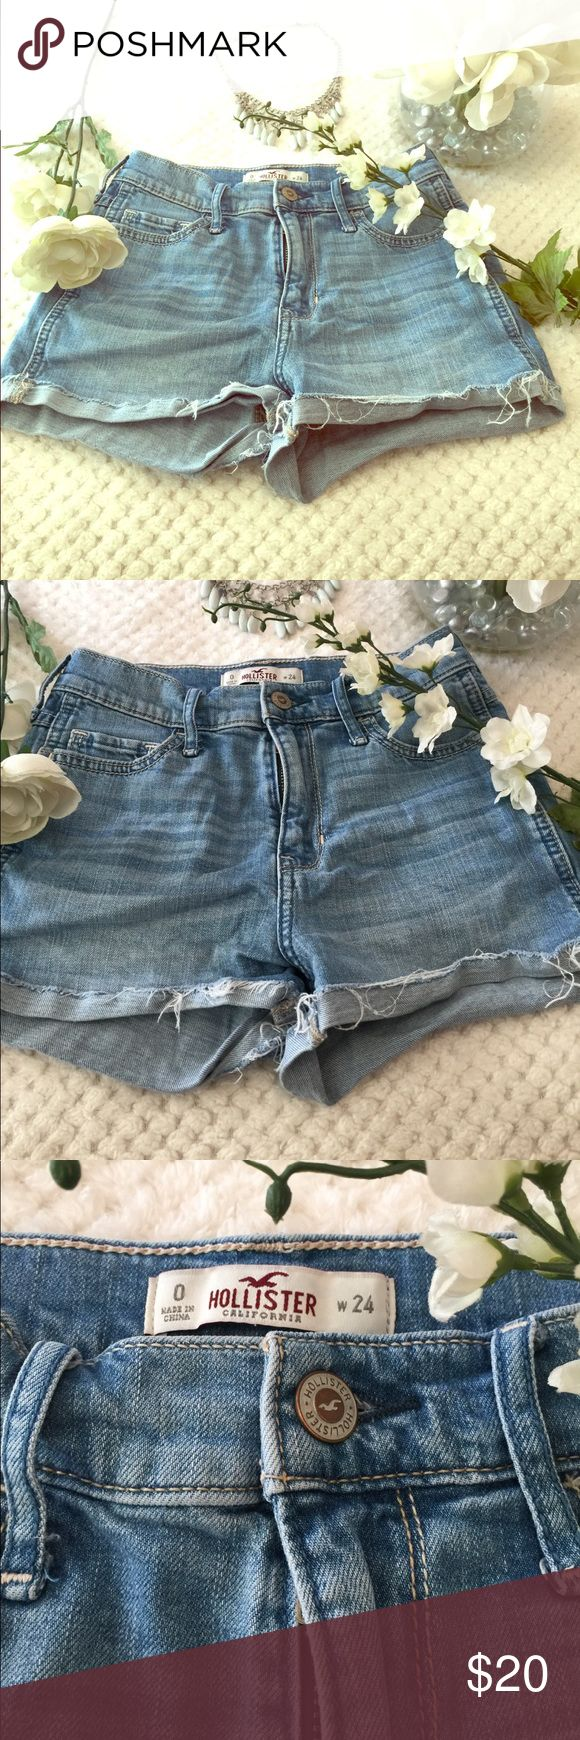 Hollister Jean shorts Light color Hollister Jean shorts really cute for summer time. W 24 Hollister Shorts Jean Shorts